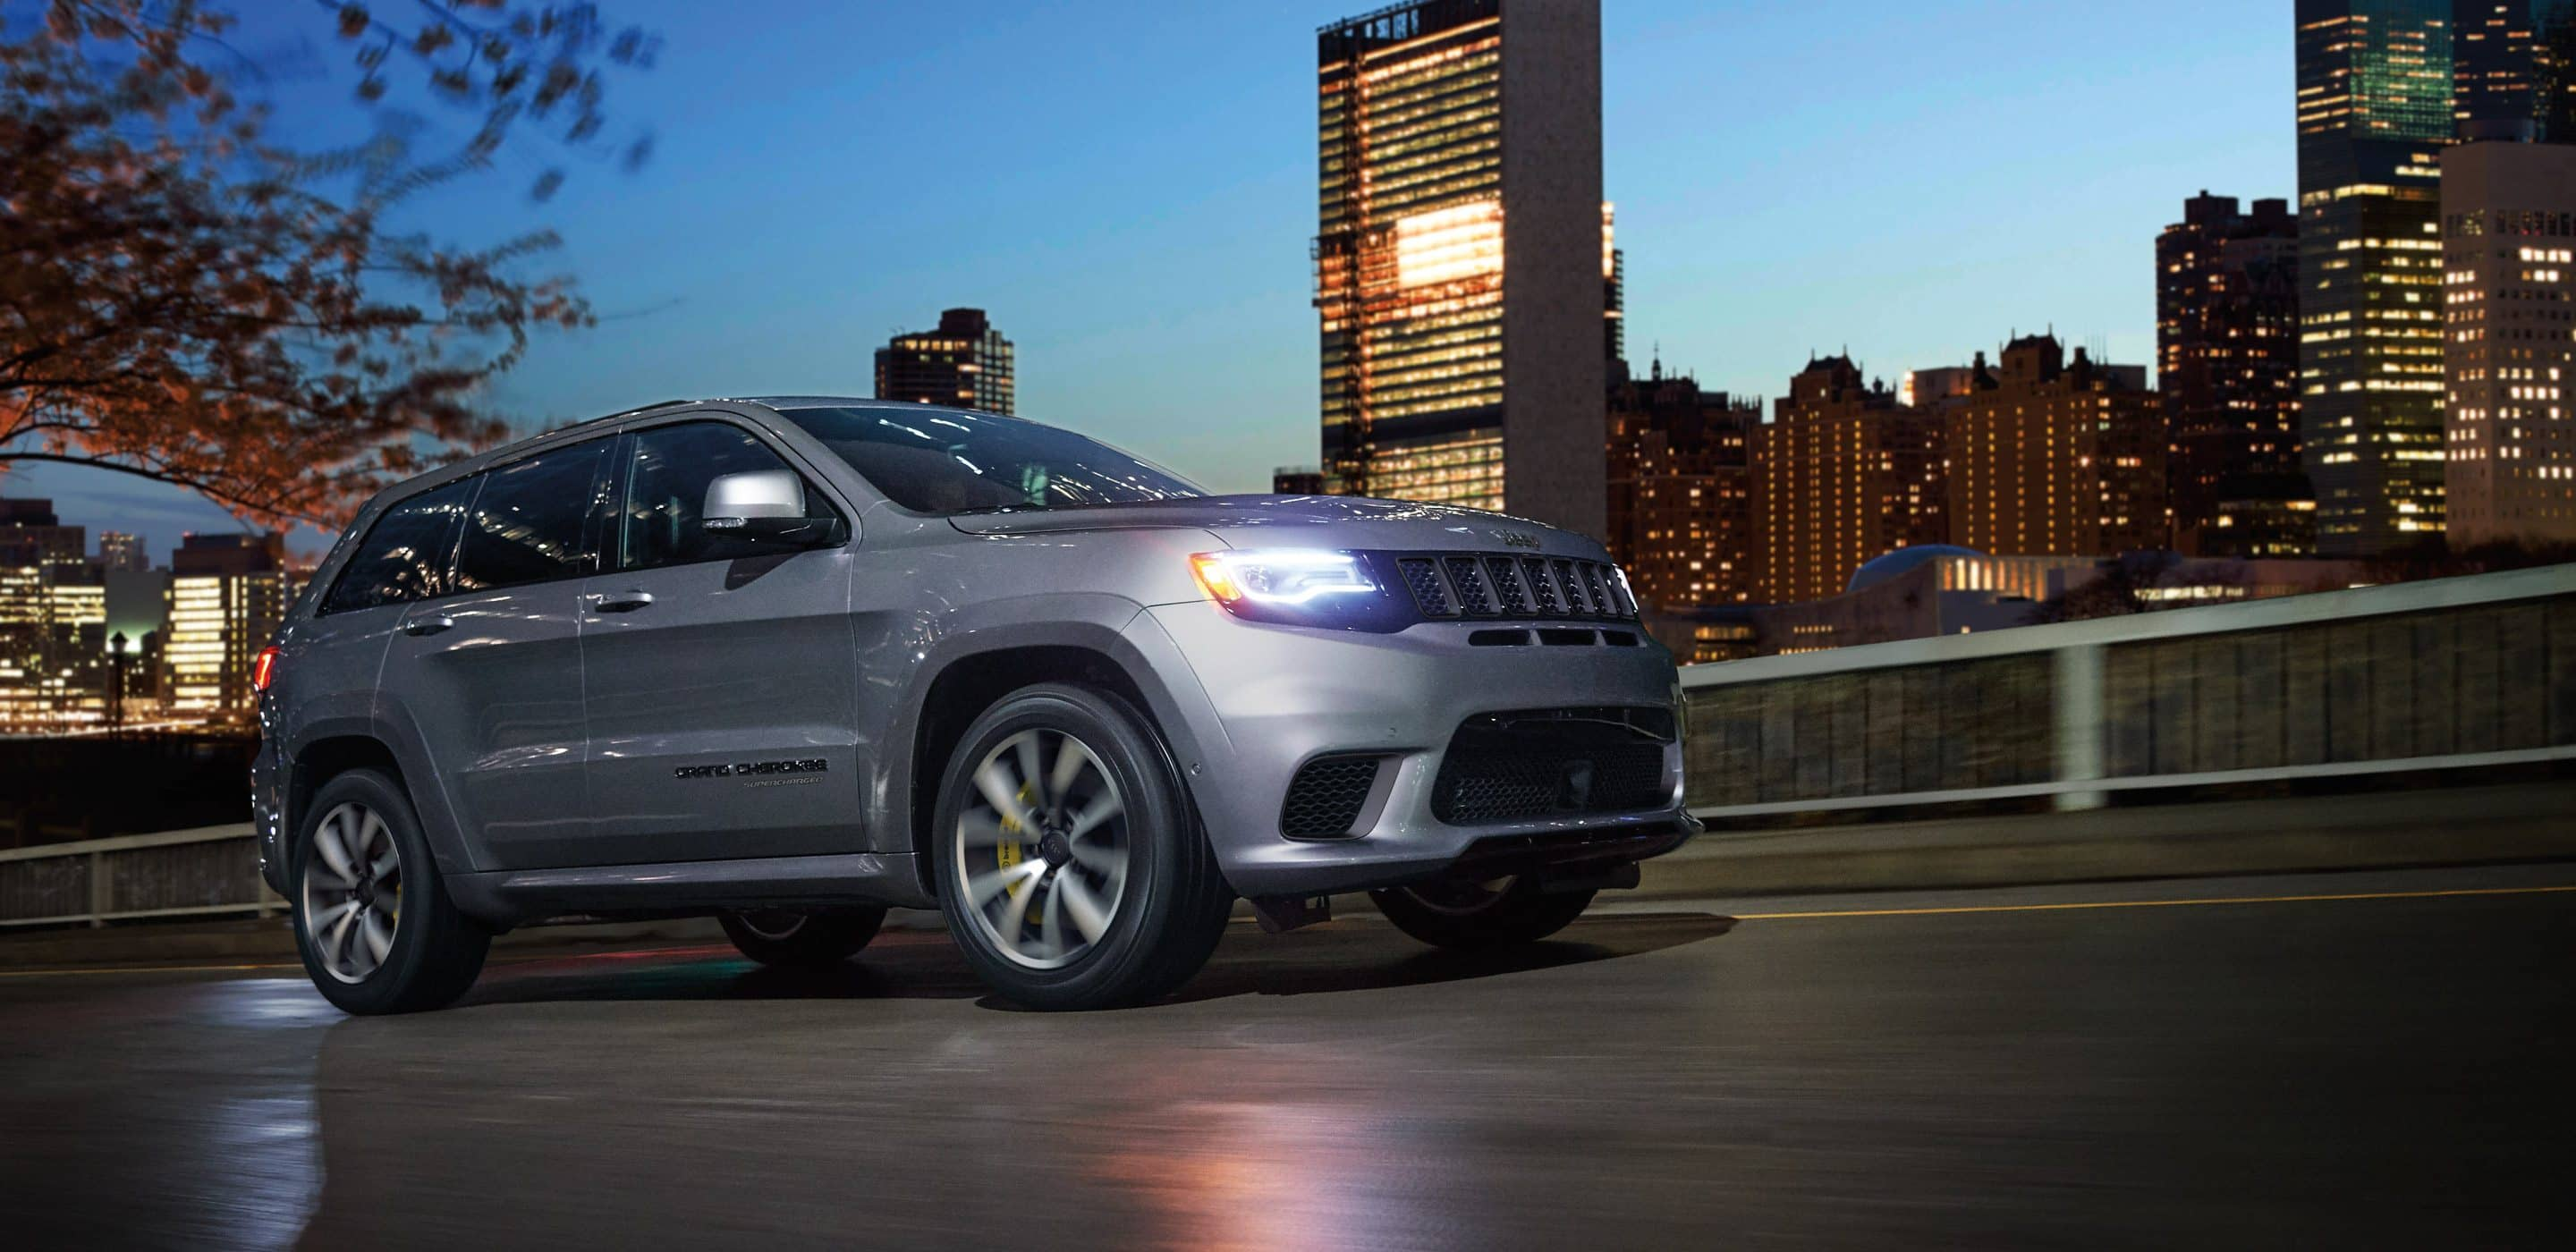 Laredo: Starting At $30,895 MSRP, The Base Grand Cherokee Laredo Comes With  The Already Capable 3.6 Liter V6 Engine, Providing 295 Horsepower And 260  ...